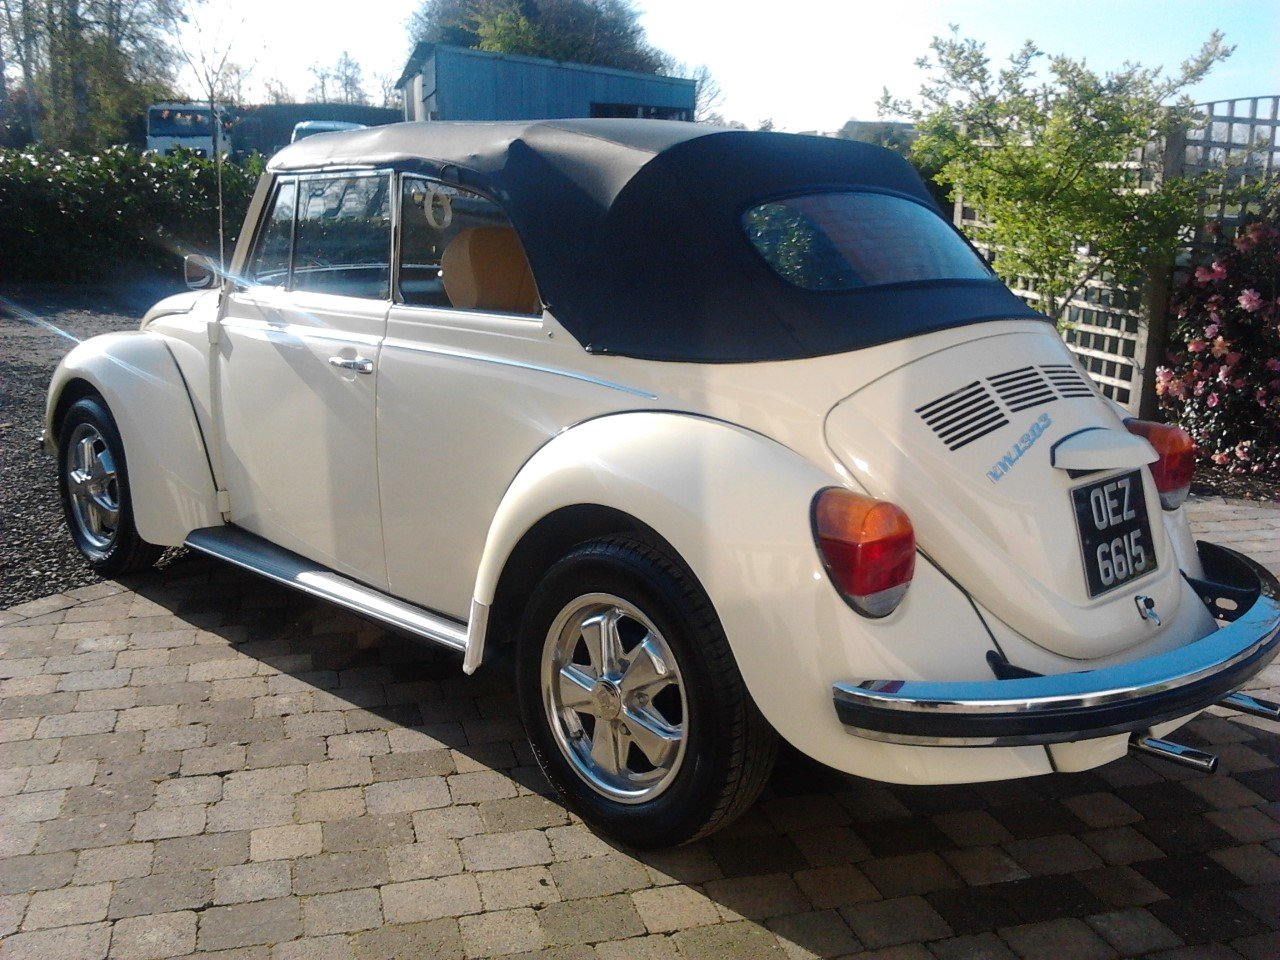 1978 VW Beetle 1303s Karmann Convertible RHD SOLD (picture 2 of 4)